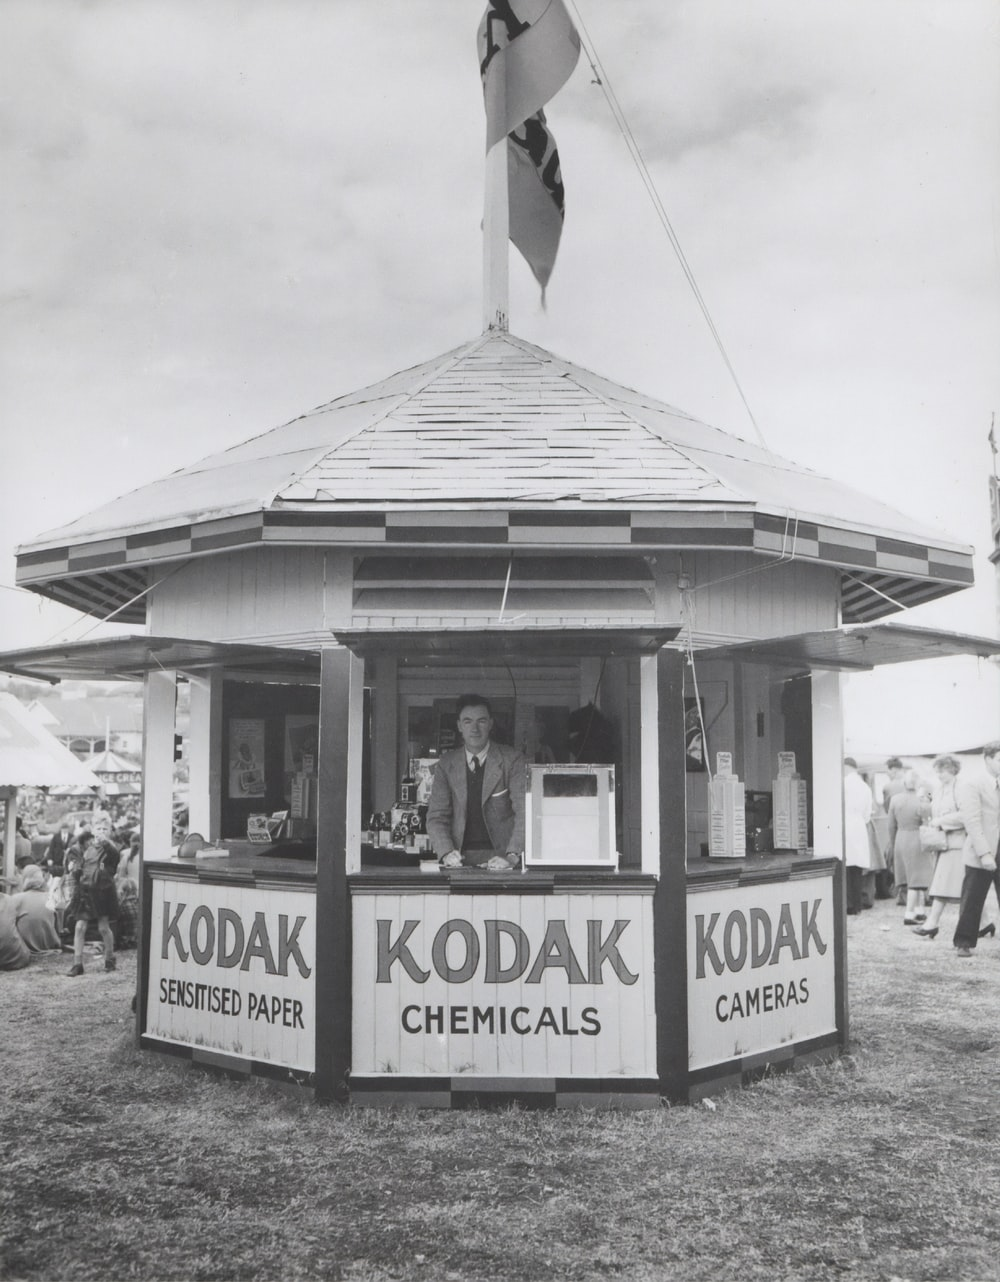 Kodak Chemicals shed